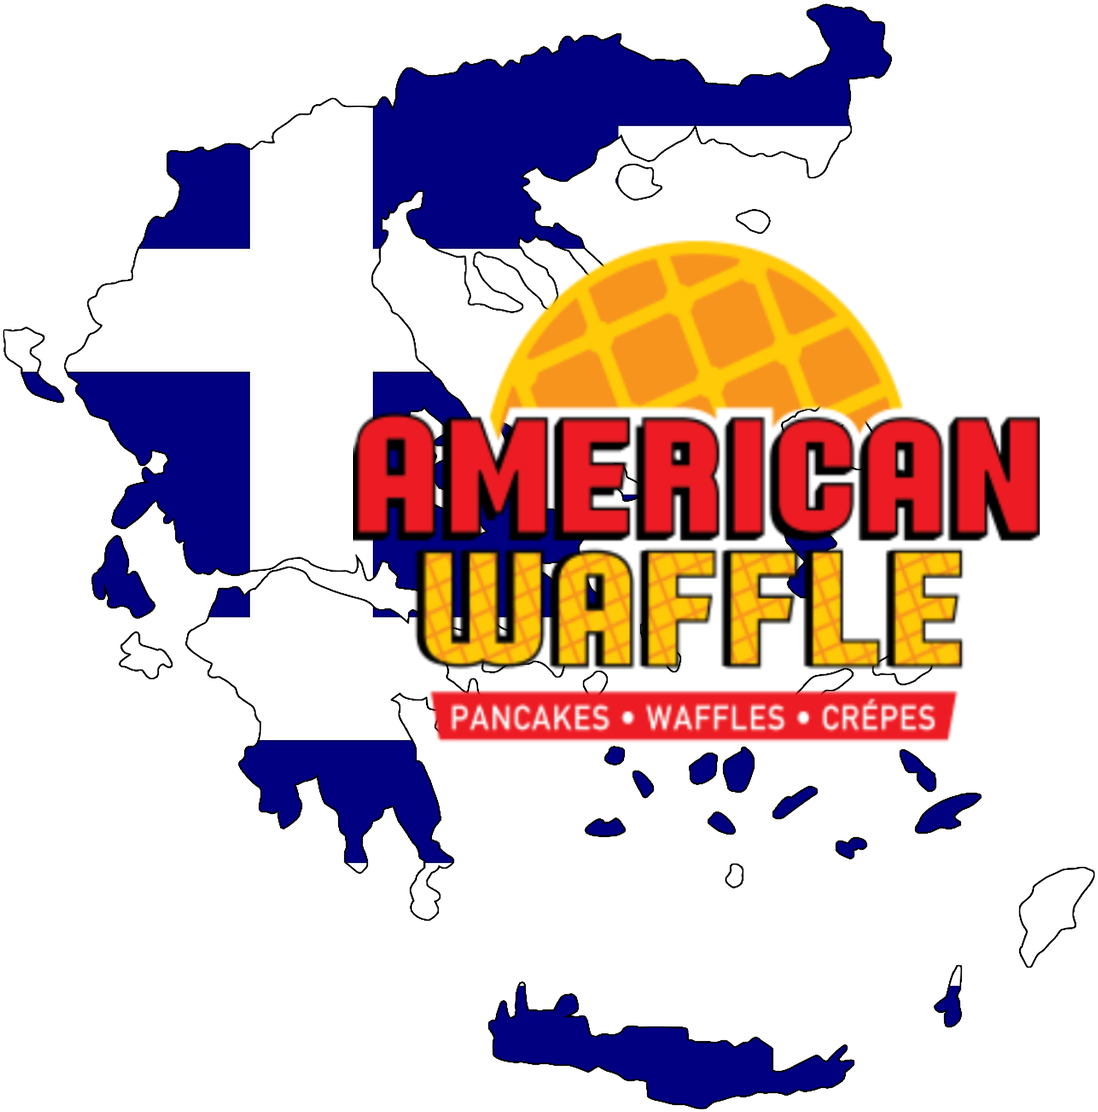 Golden Malted Waffles Comes to Greece